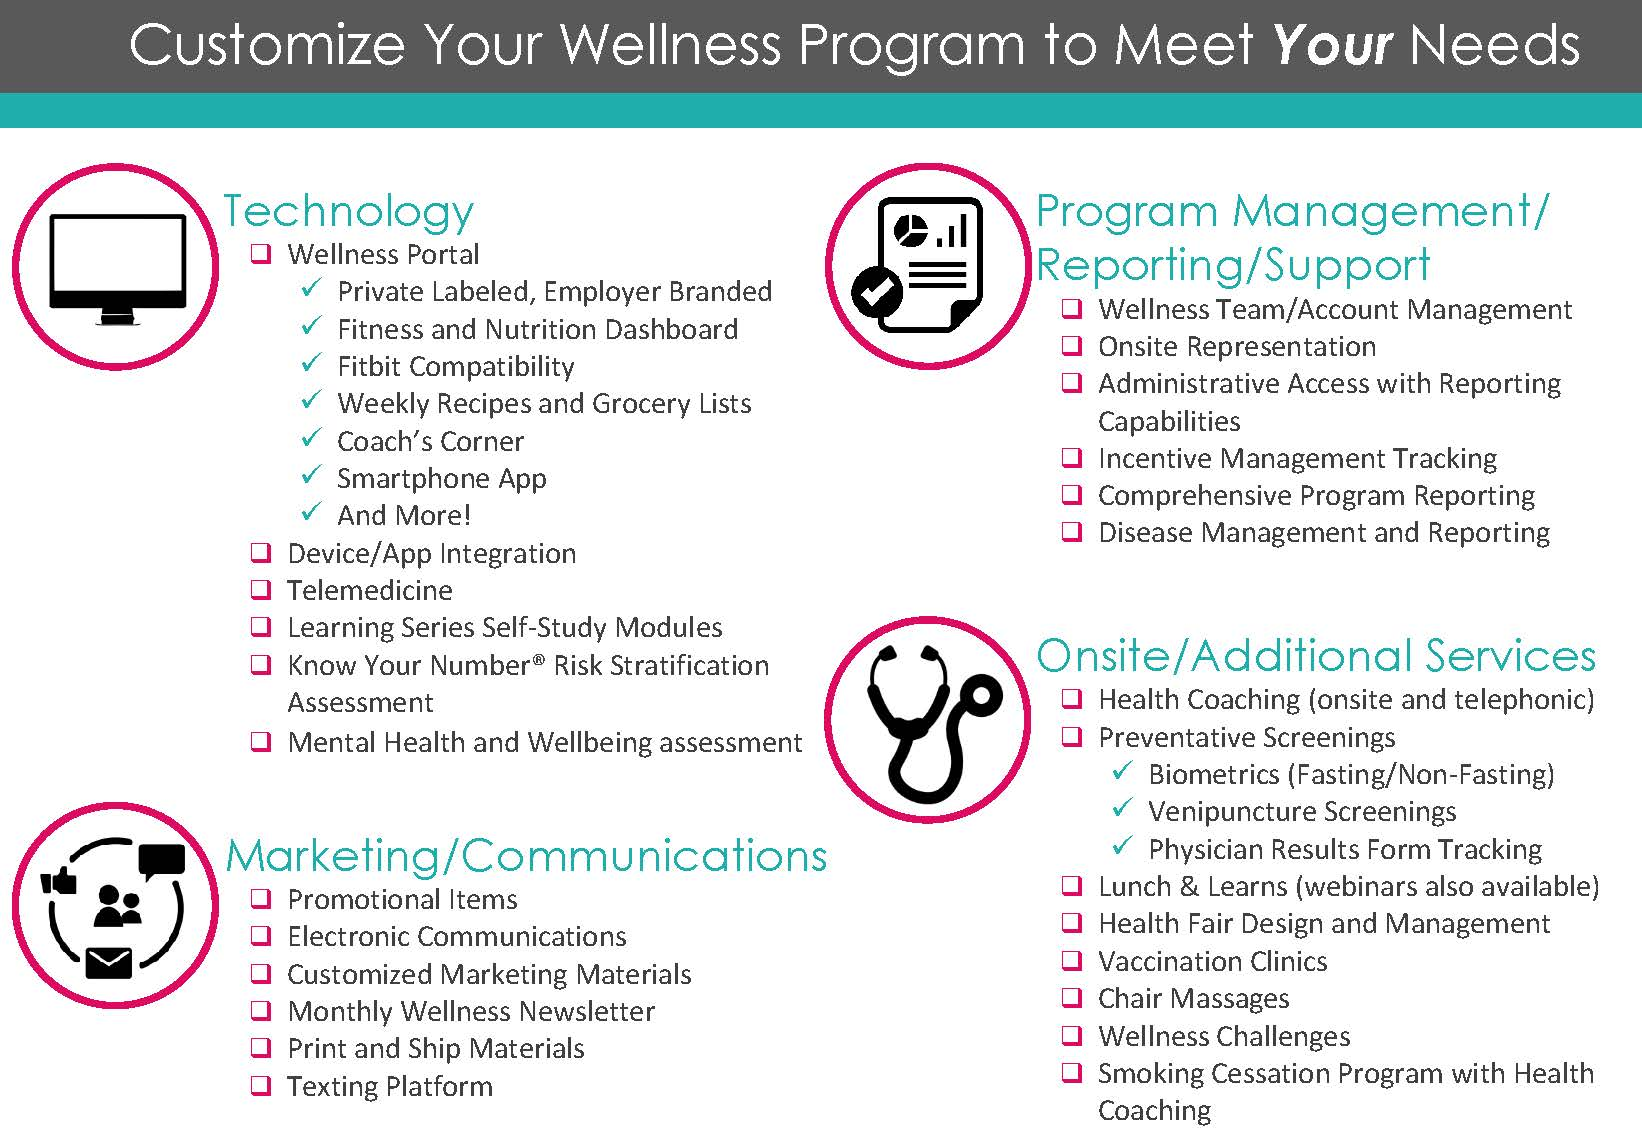 synergy employment toronto ontario employee wellness for employees participating in their corporate wellness program users have quick access to their program requirements participation incentives